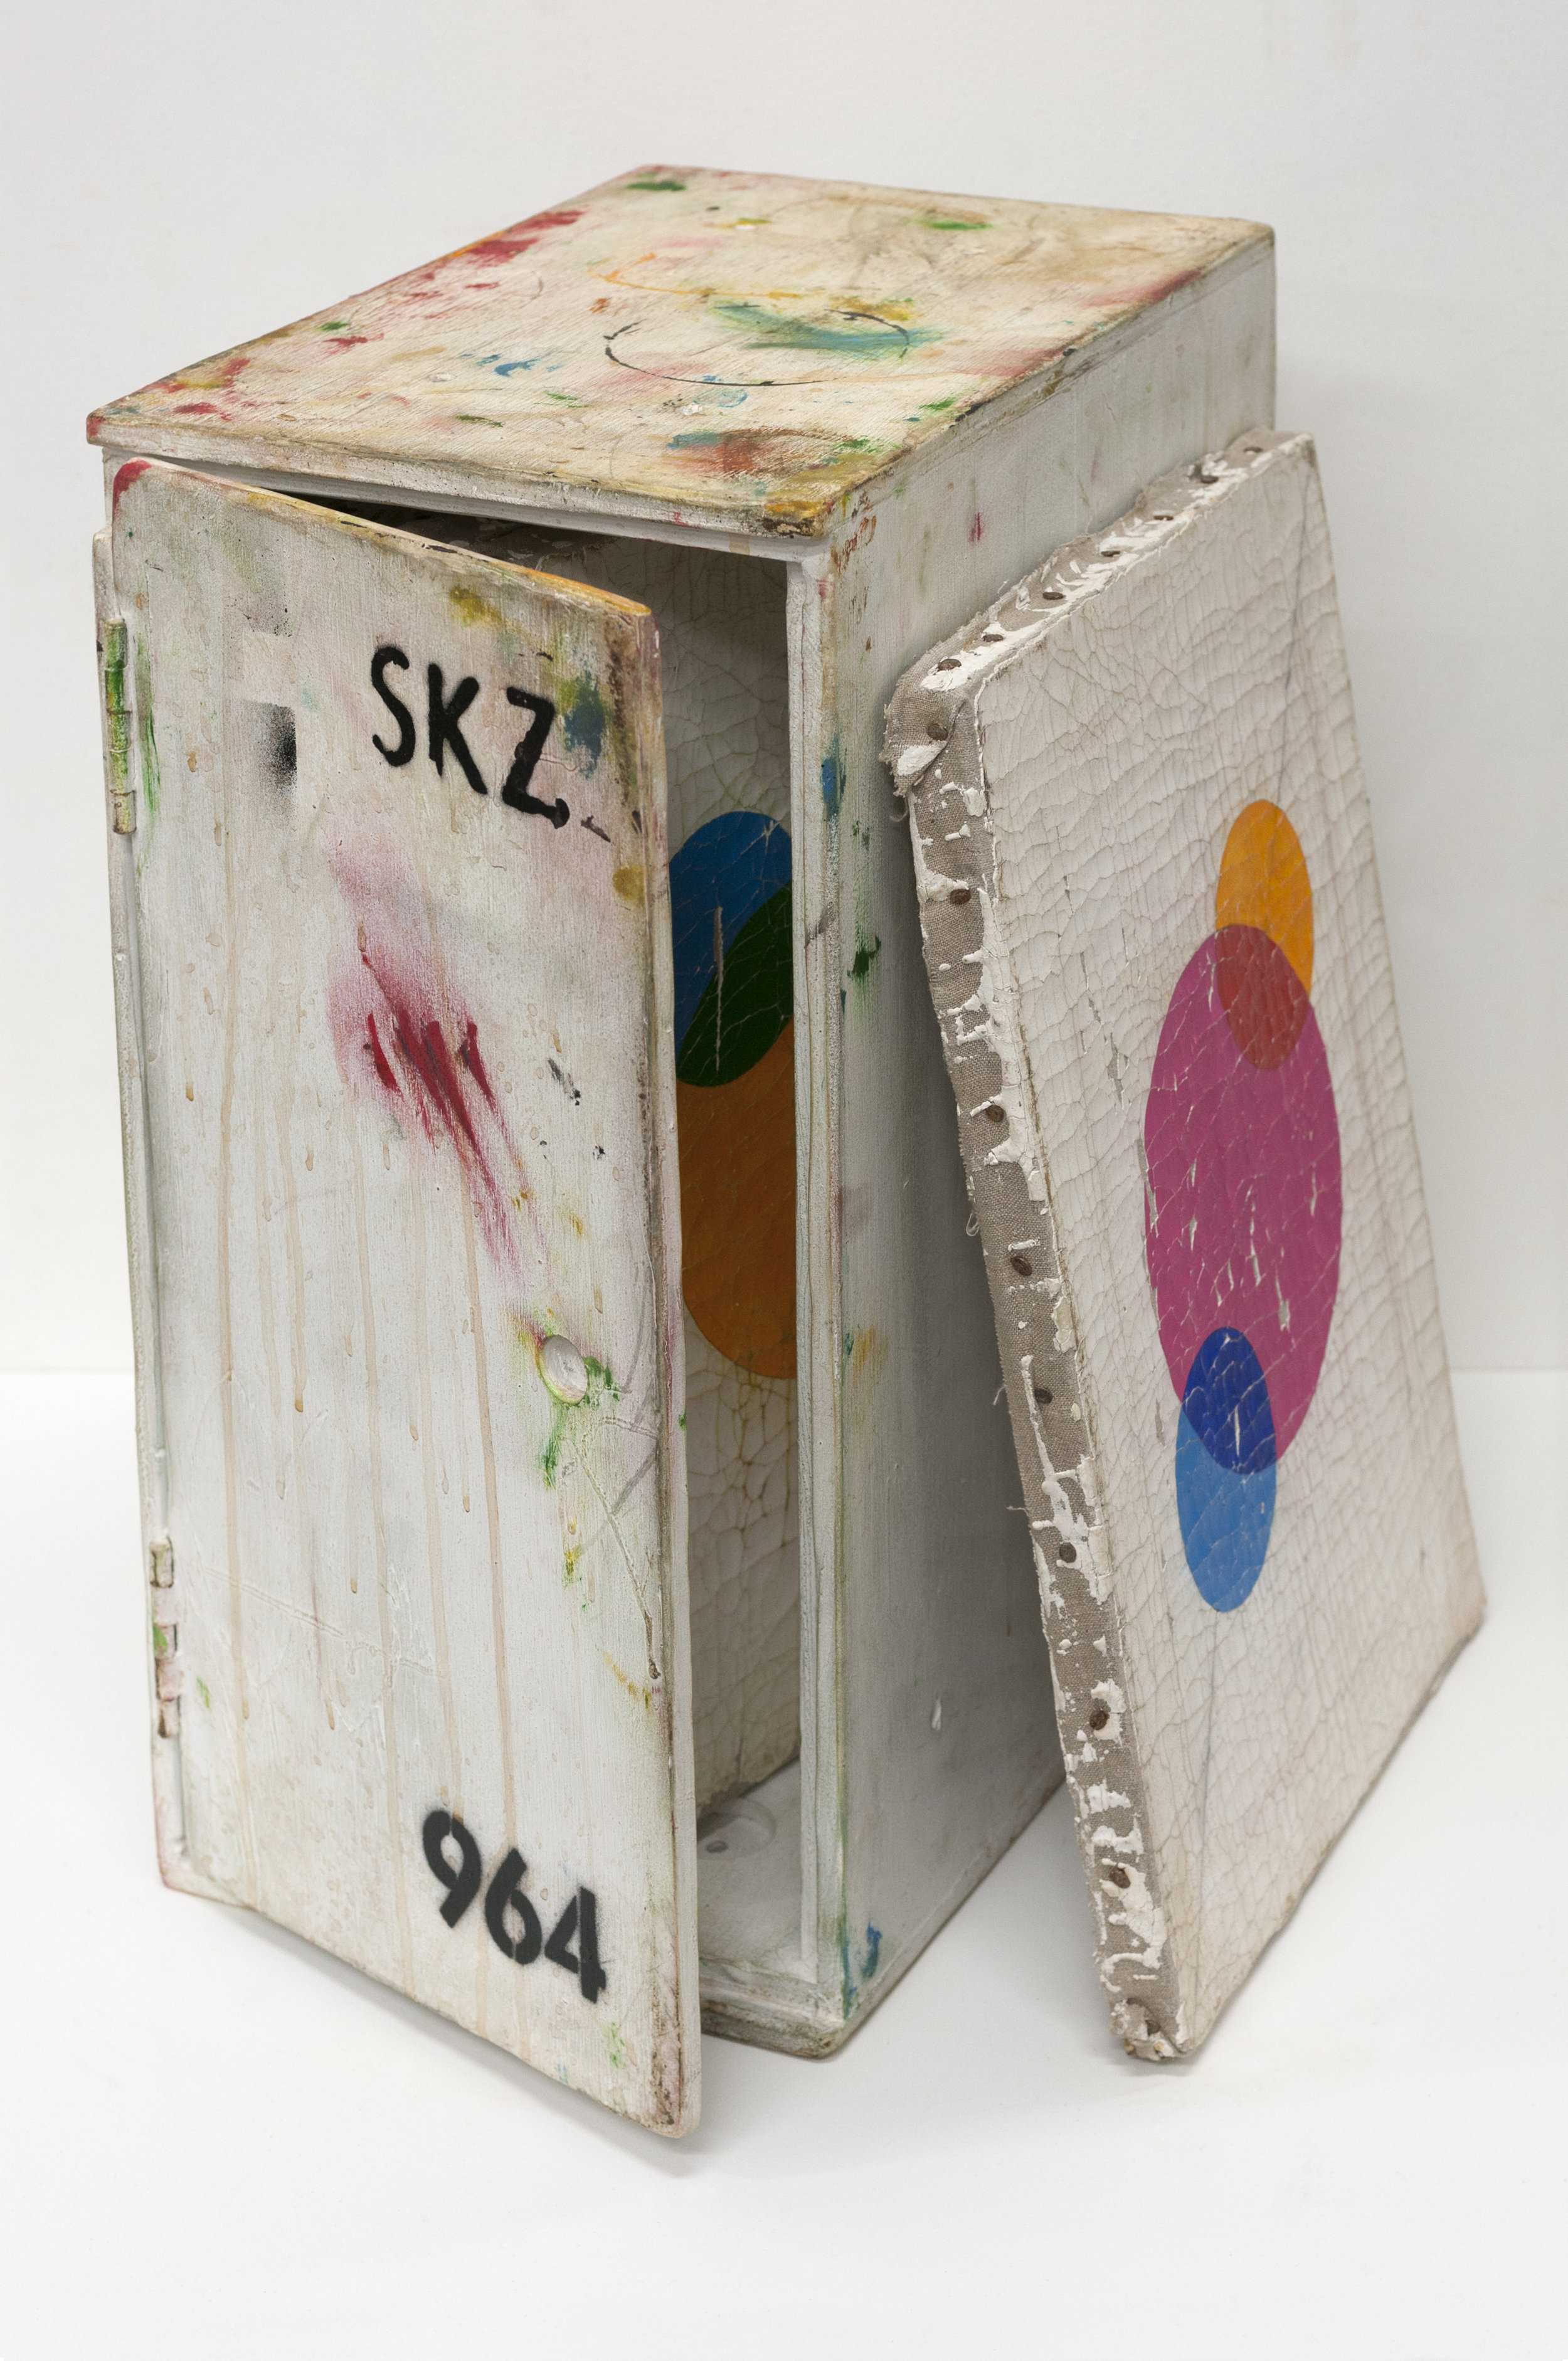 Dan Levenson  SKZ Student Painting Storage Box Number 964 , 2018 paint on plywood 50 x 25 x 36 cm 19 11/16 x 9 27/32 x 14 3/16 inches